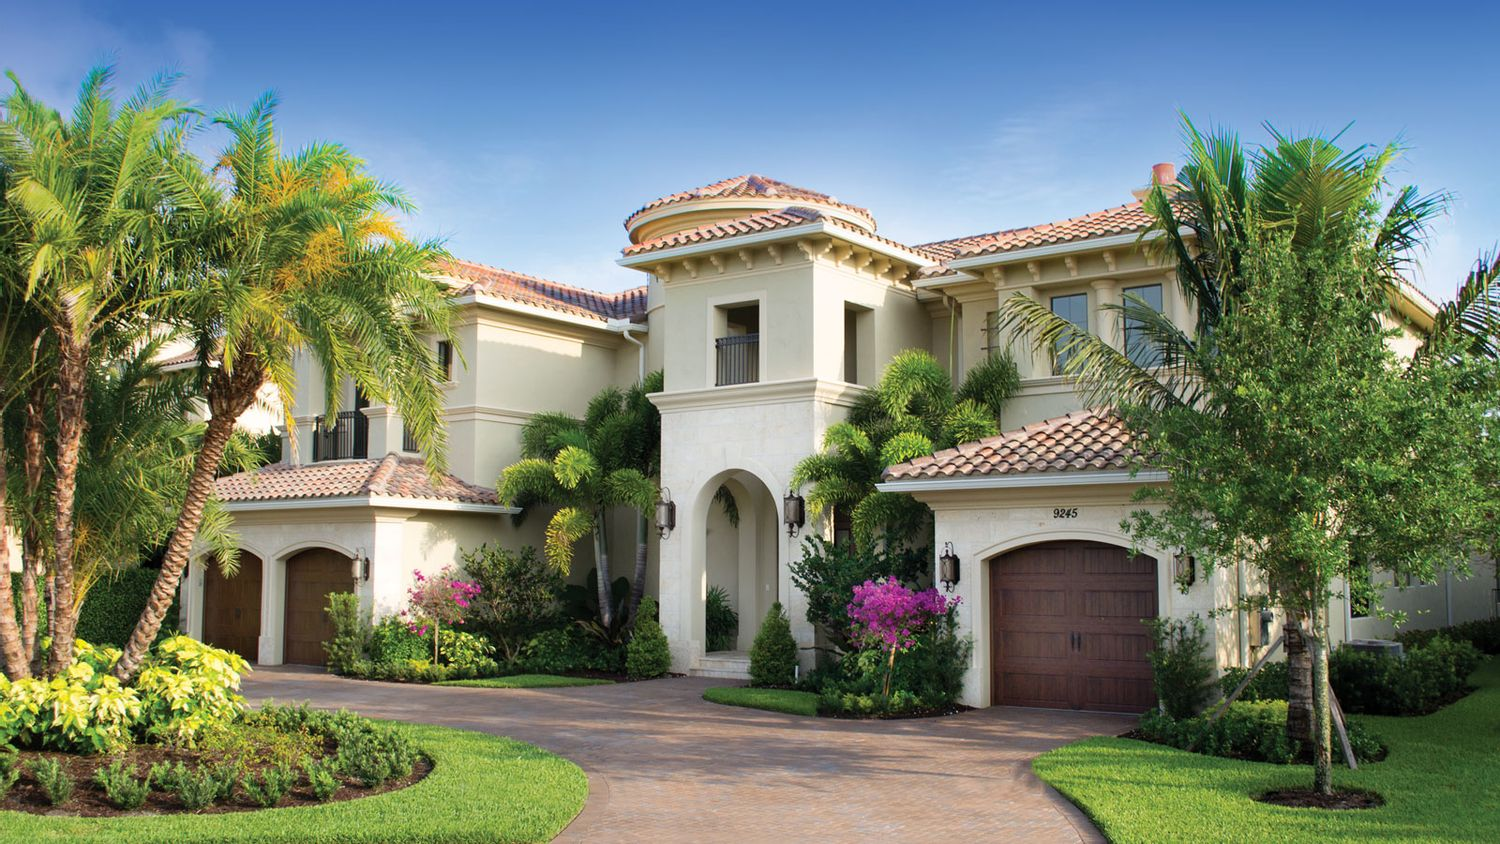 Delray beach florida homes for sale luxury real estate for Luxury houses florida